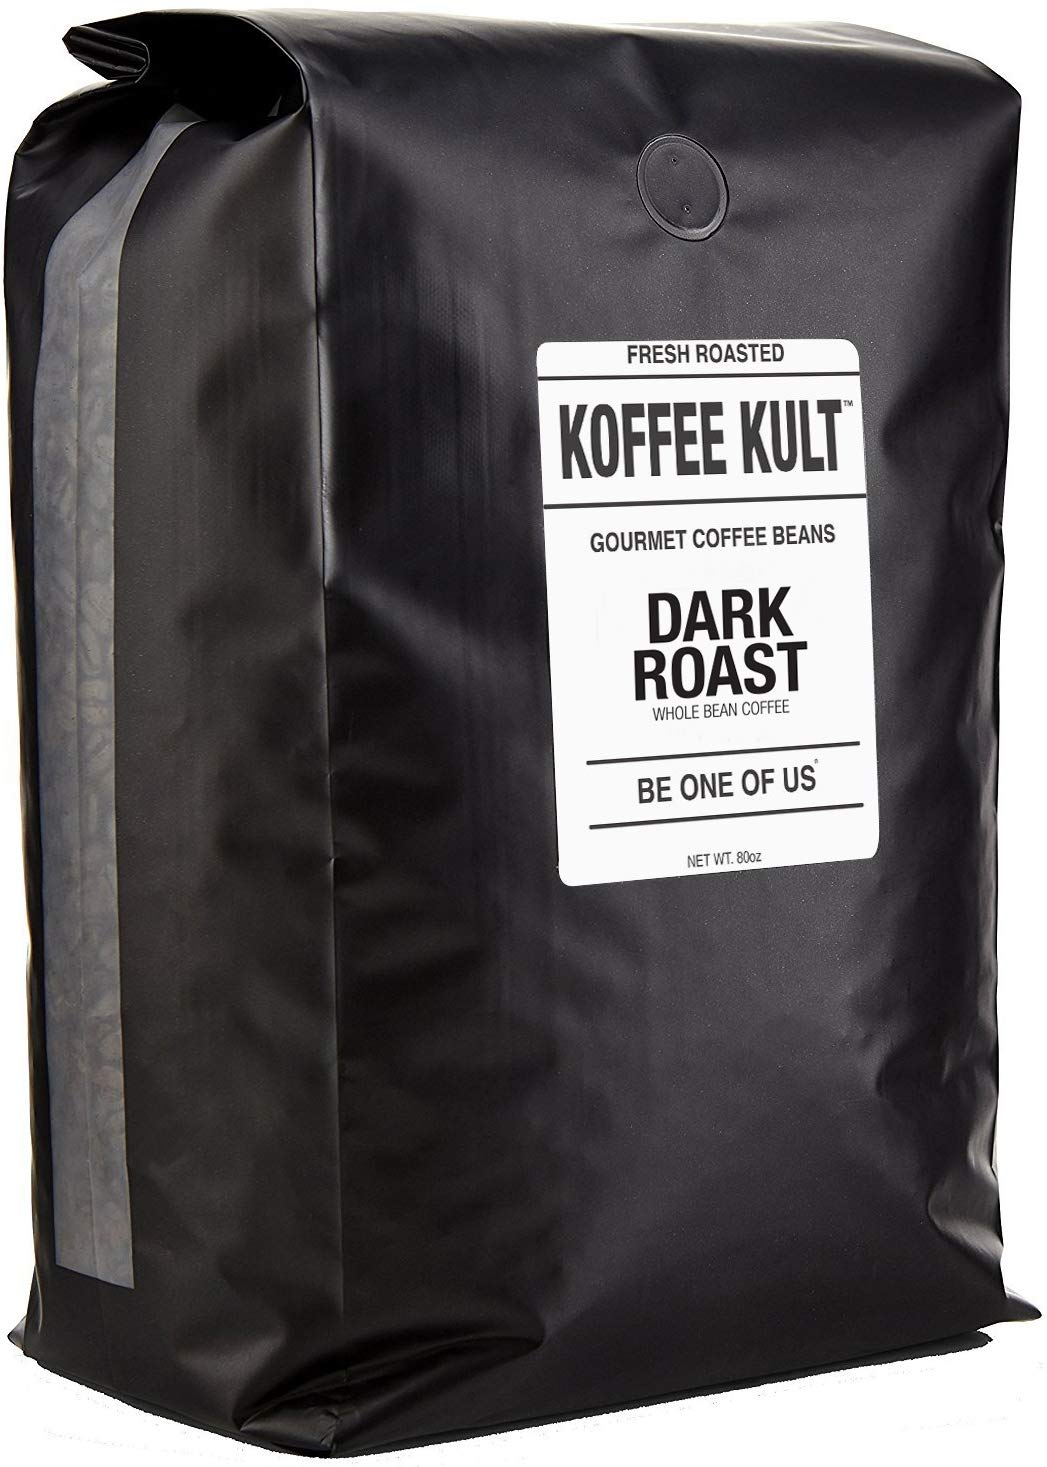 Koffee Kult DARK ROAST COFFEE BEANS (Whole Bean 5 Lbs) - Highest Quality Specialty Grade Whole Bean Coffee - Fresh Gourmet Aromatic Artisan Blend by Koffee Kult